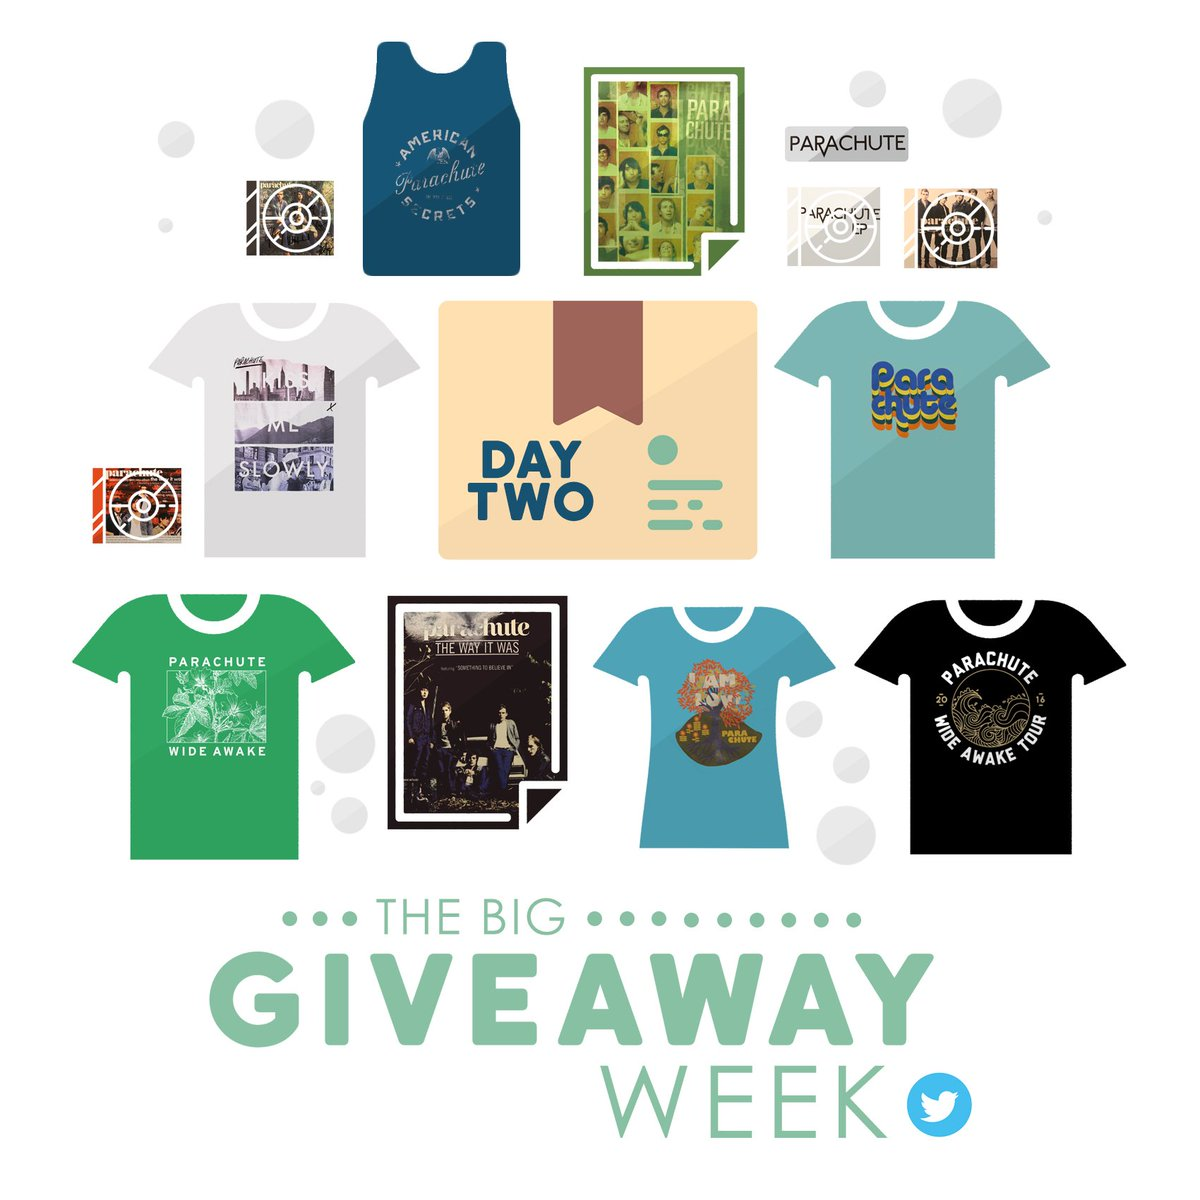 We're giving away a box of stuff for The Big Giveaway Week. RT this for a chance to win everything pictured here! https://t.co/xC5nK4x3dW